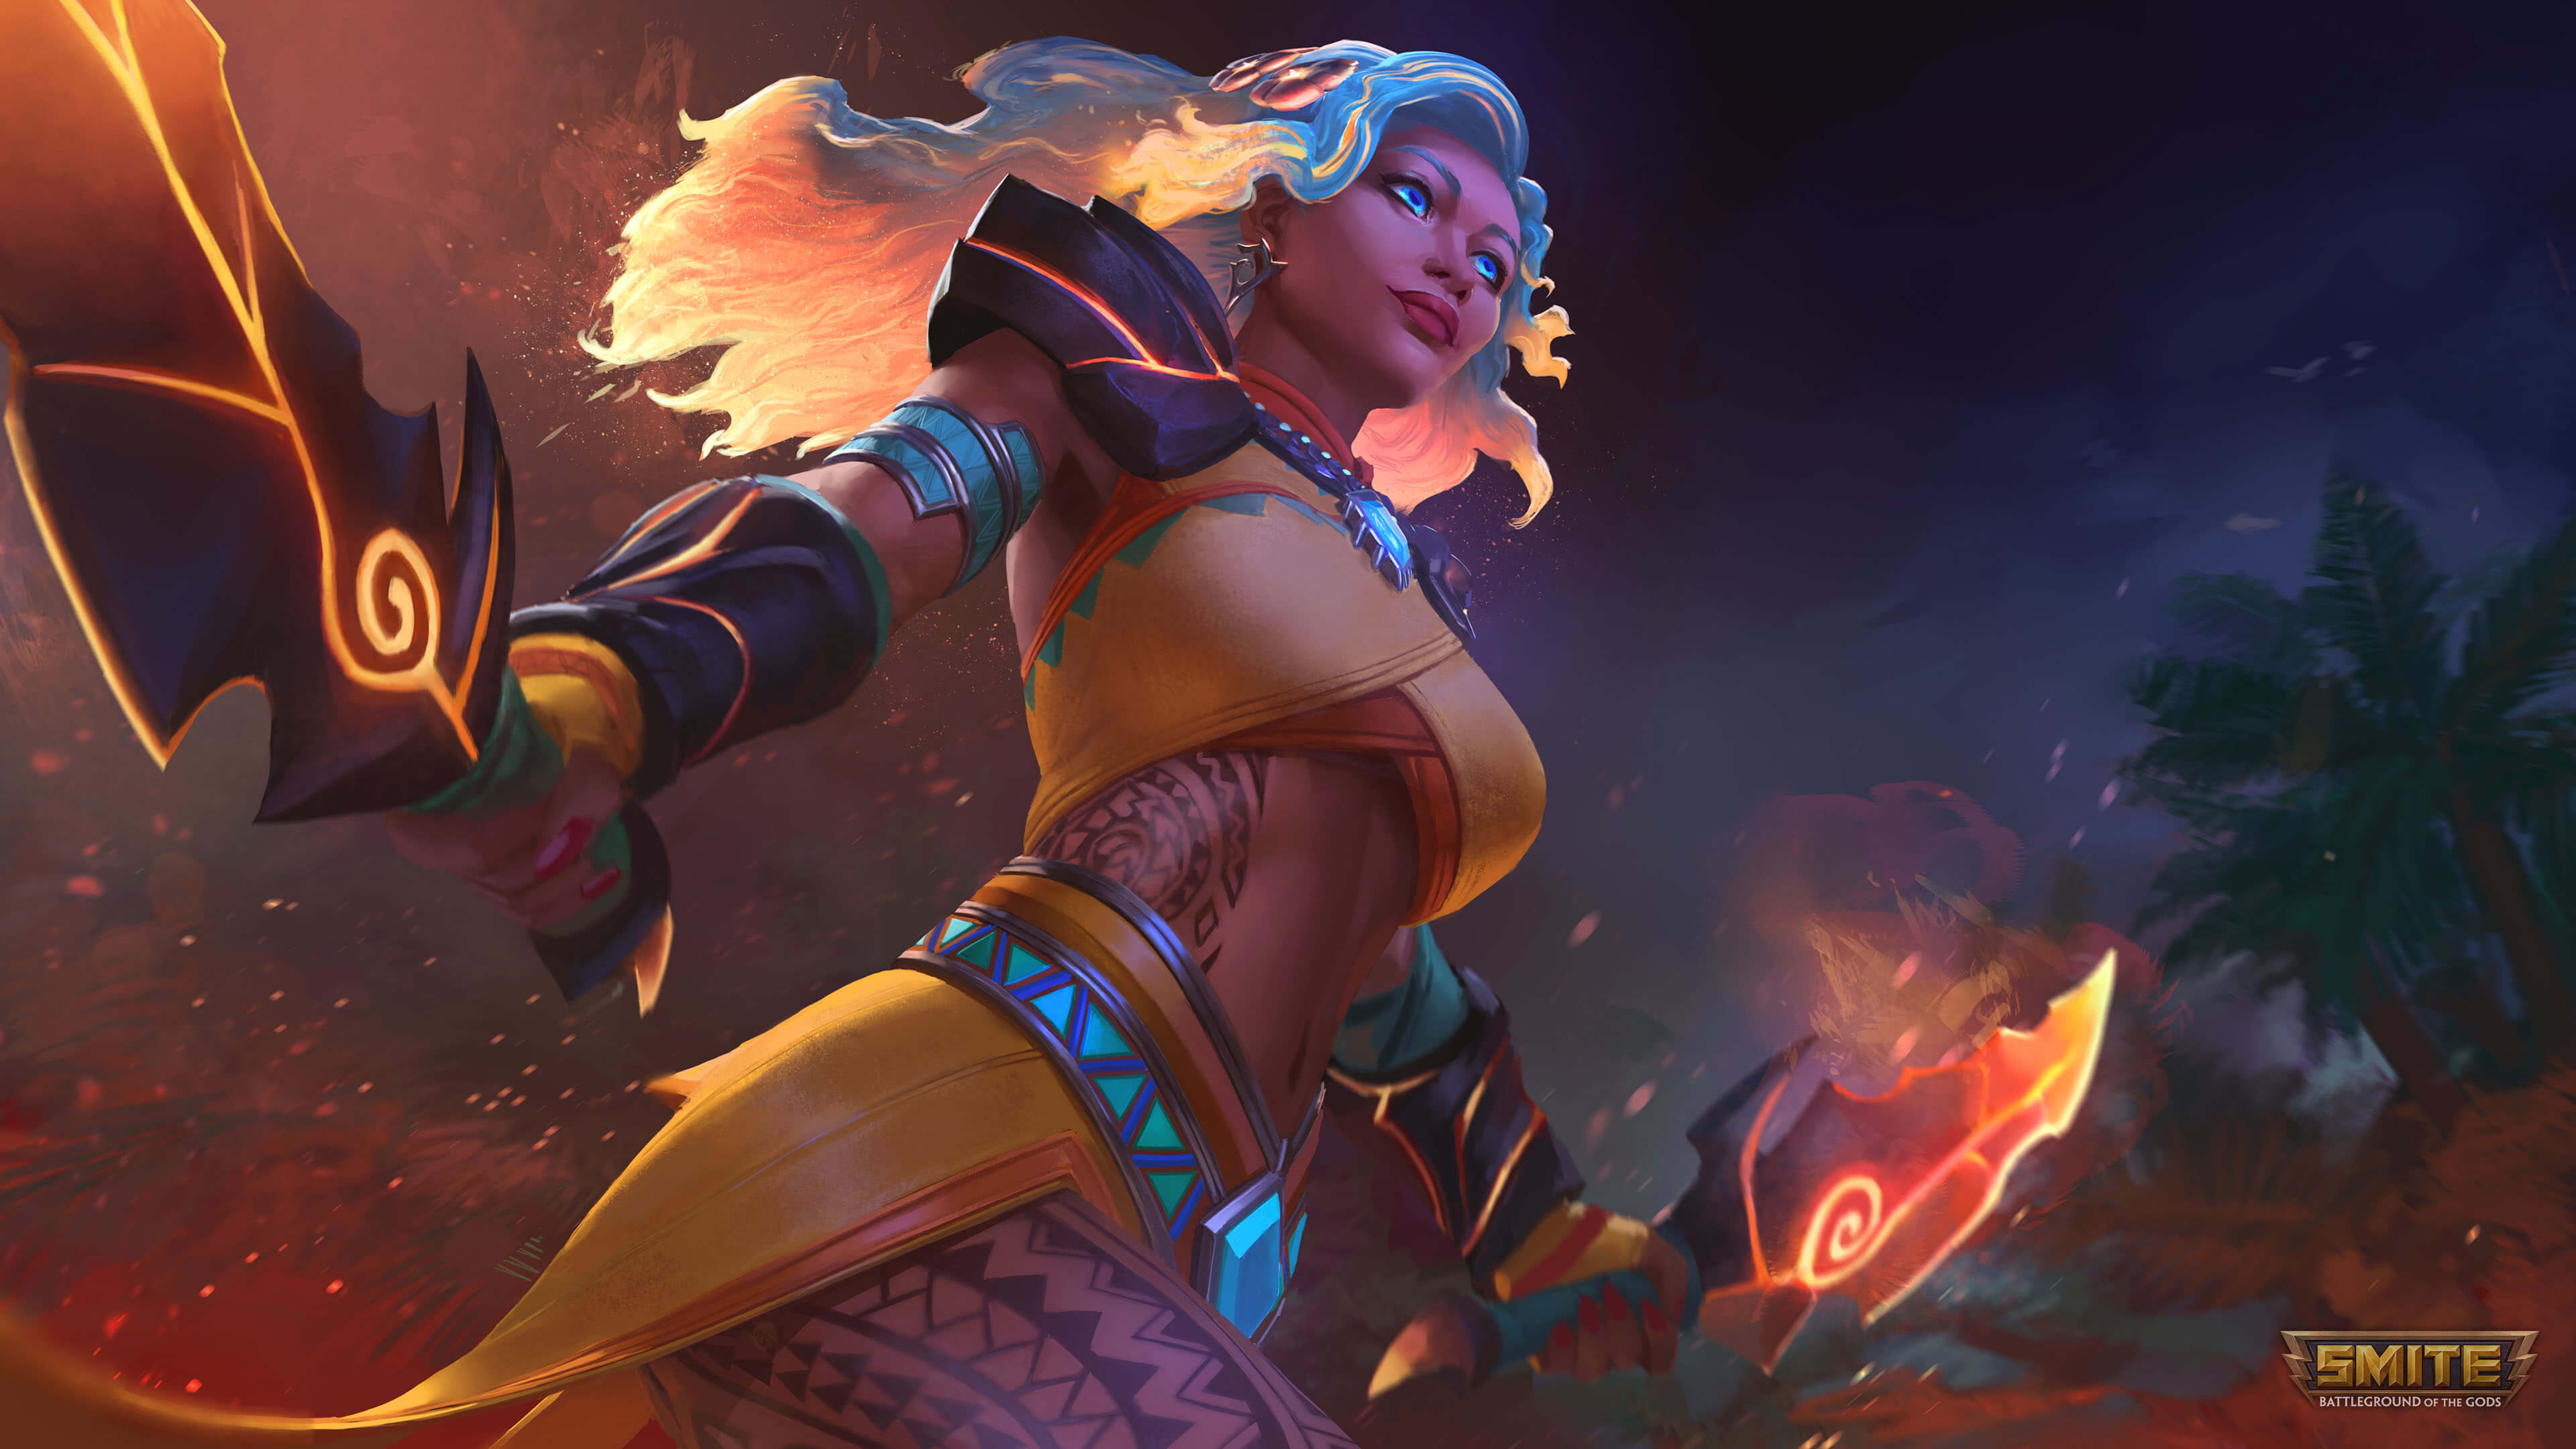 Freya Smite hot pictures